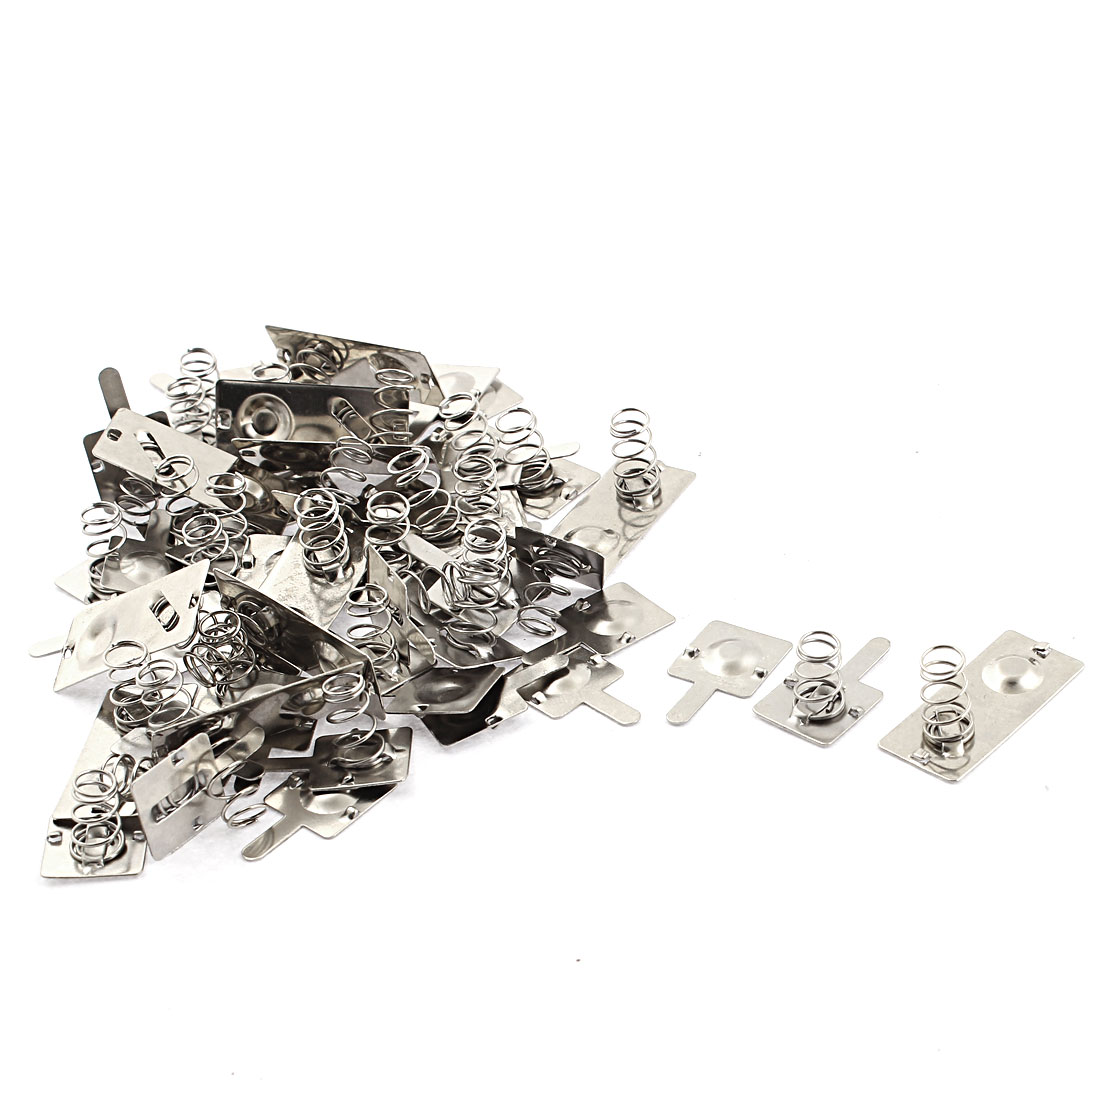 Metal AA Battery Connecting Spring Contact Plate Terminal Silver Tone 18pcs